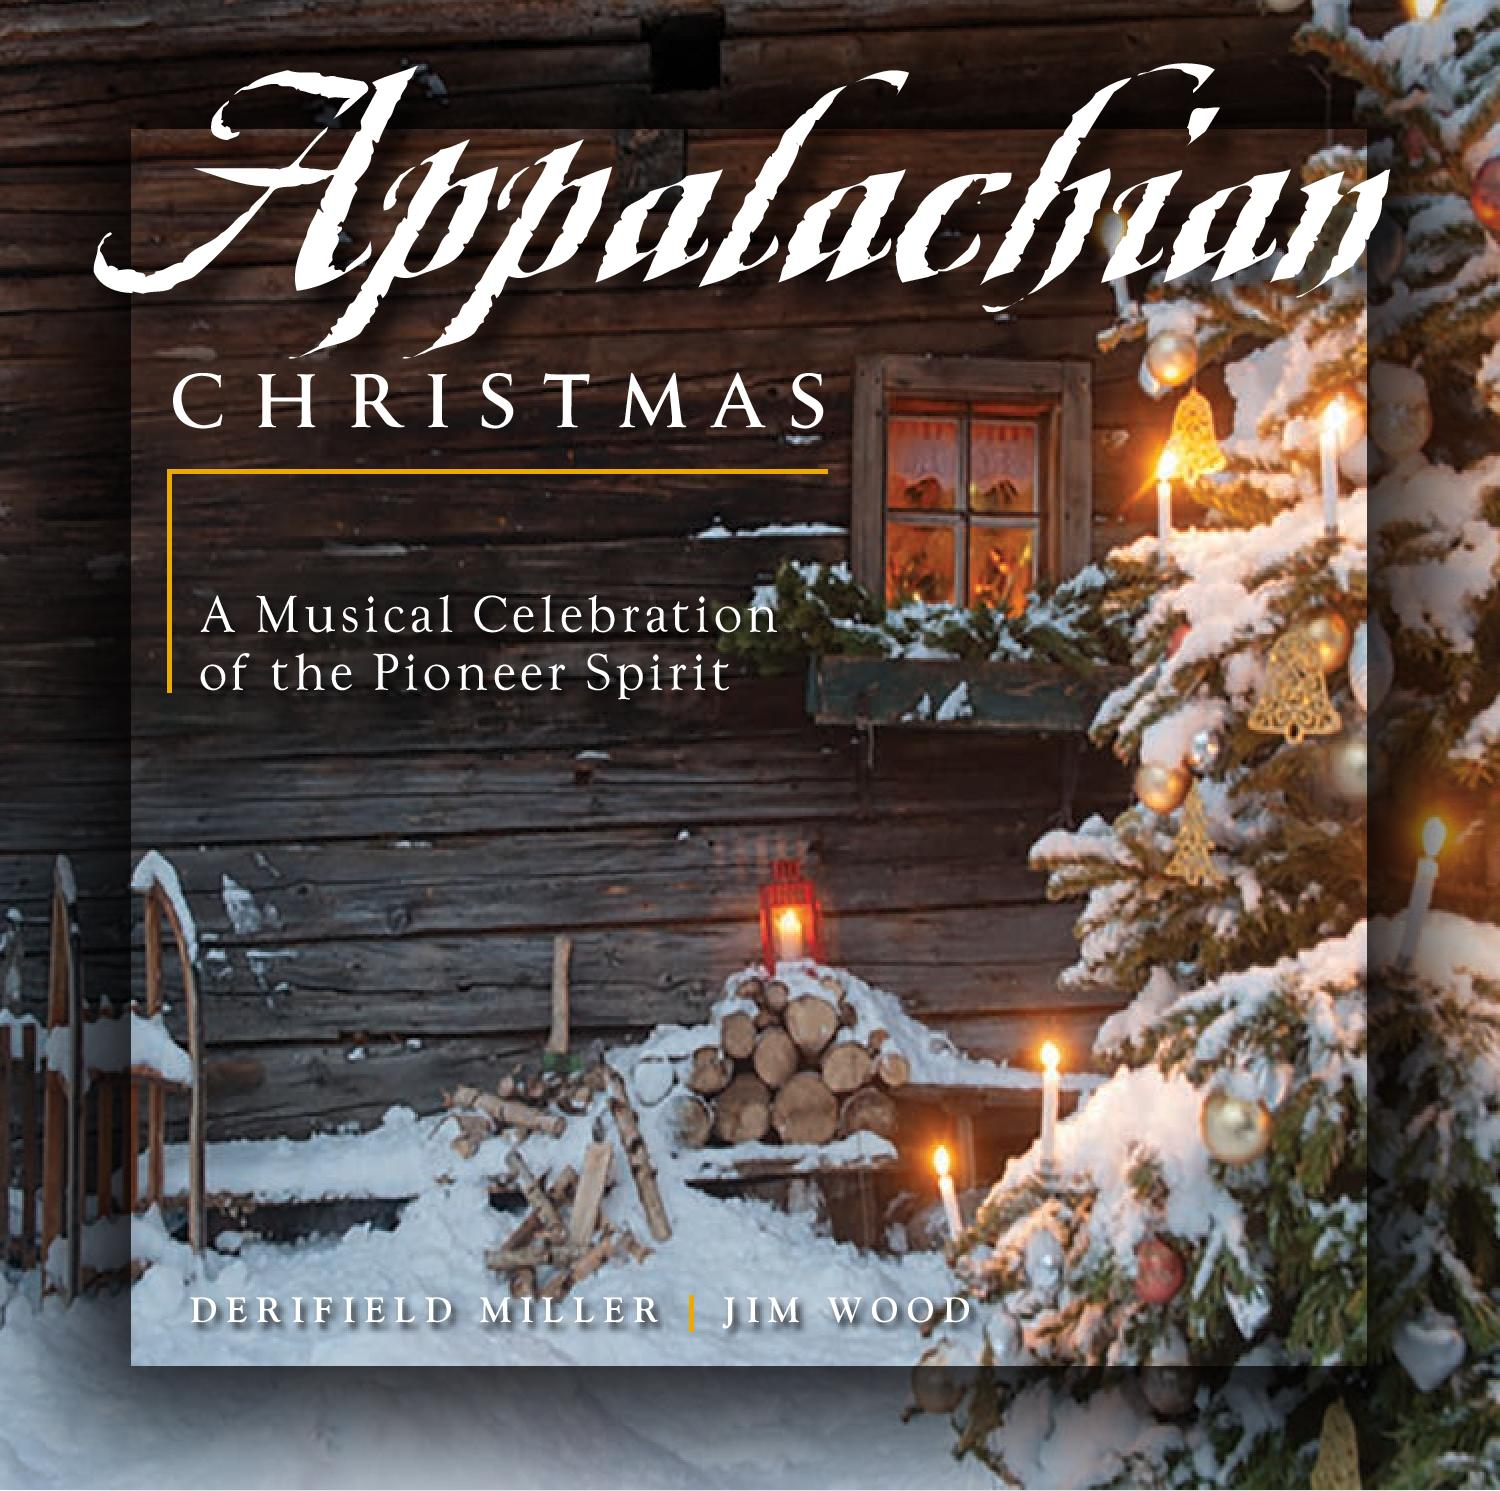 Appalachian Christmas CD cover mech.-page-001.jpg